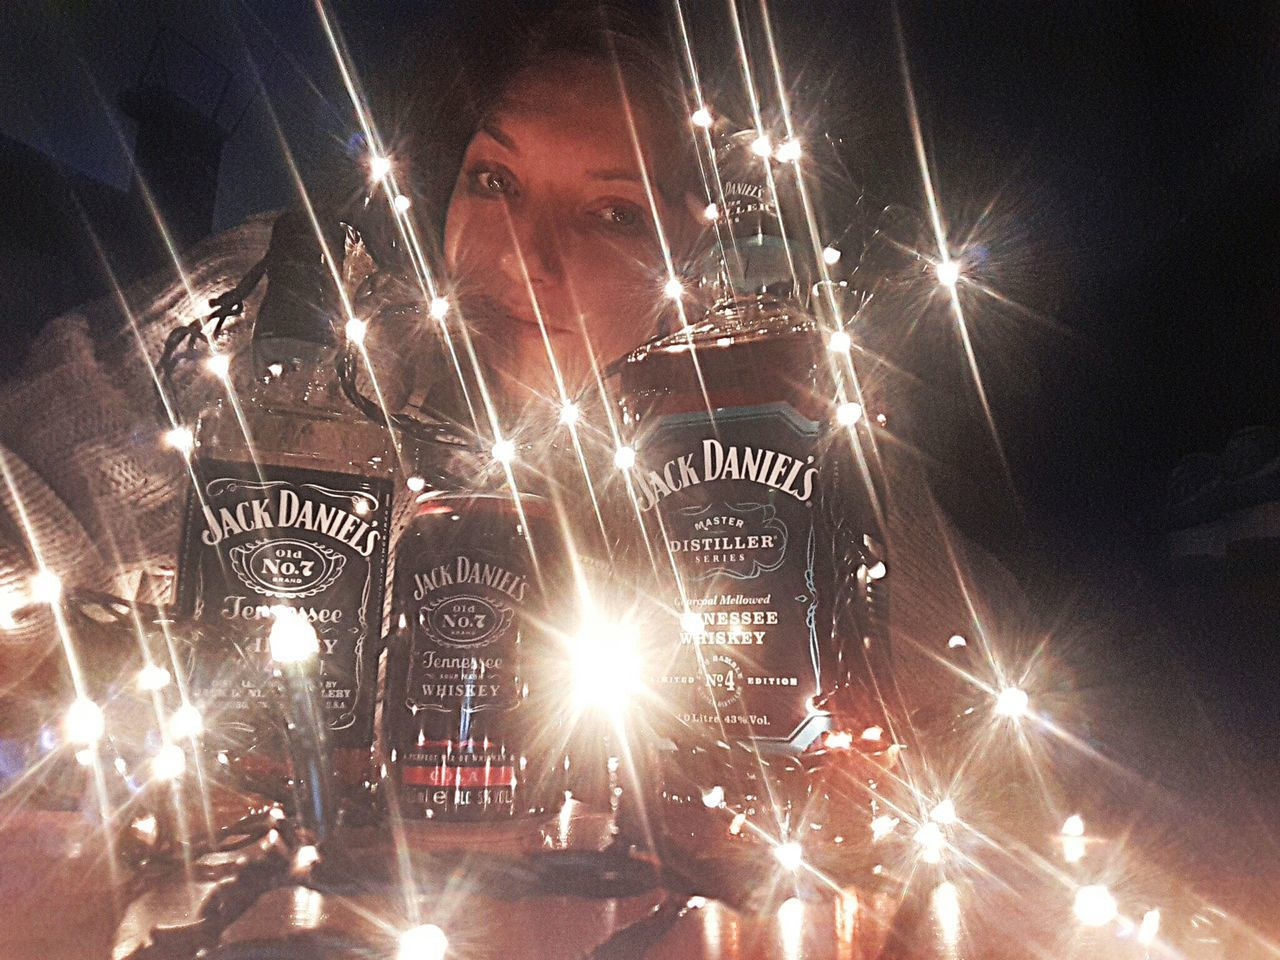 People Night Take Photos Yea We Having Fun Having Fun :) Enjoying Life Playing Hello World Love♡ Lifestyles Mytimepiece Lovehome Real People Beauty JackDanielsSelfies Yeah! Free Time My Happiness Full Length Hotlook Priceless Crismaslight Jack Daniels